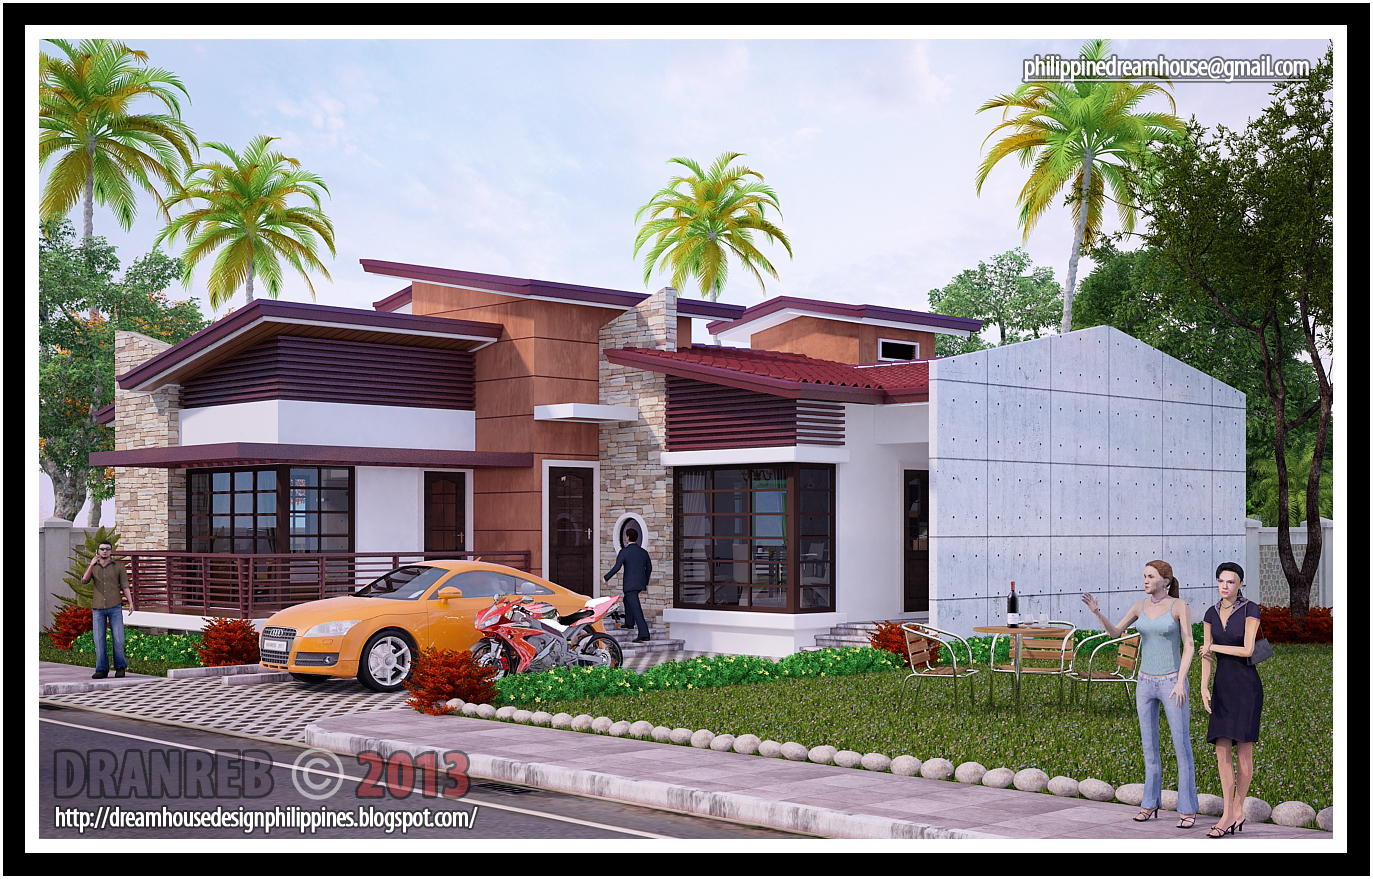 Does this dream house design looks familiar to you for Residential house design